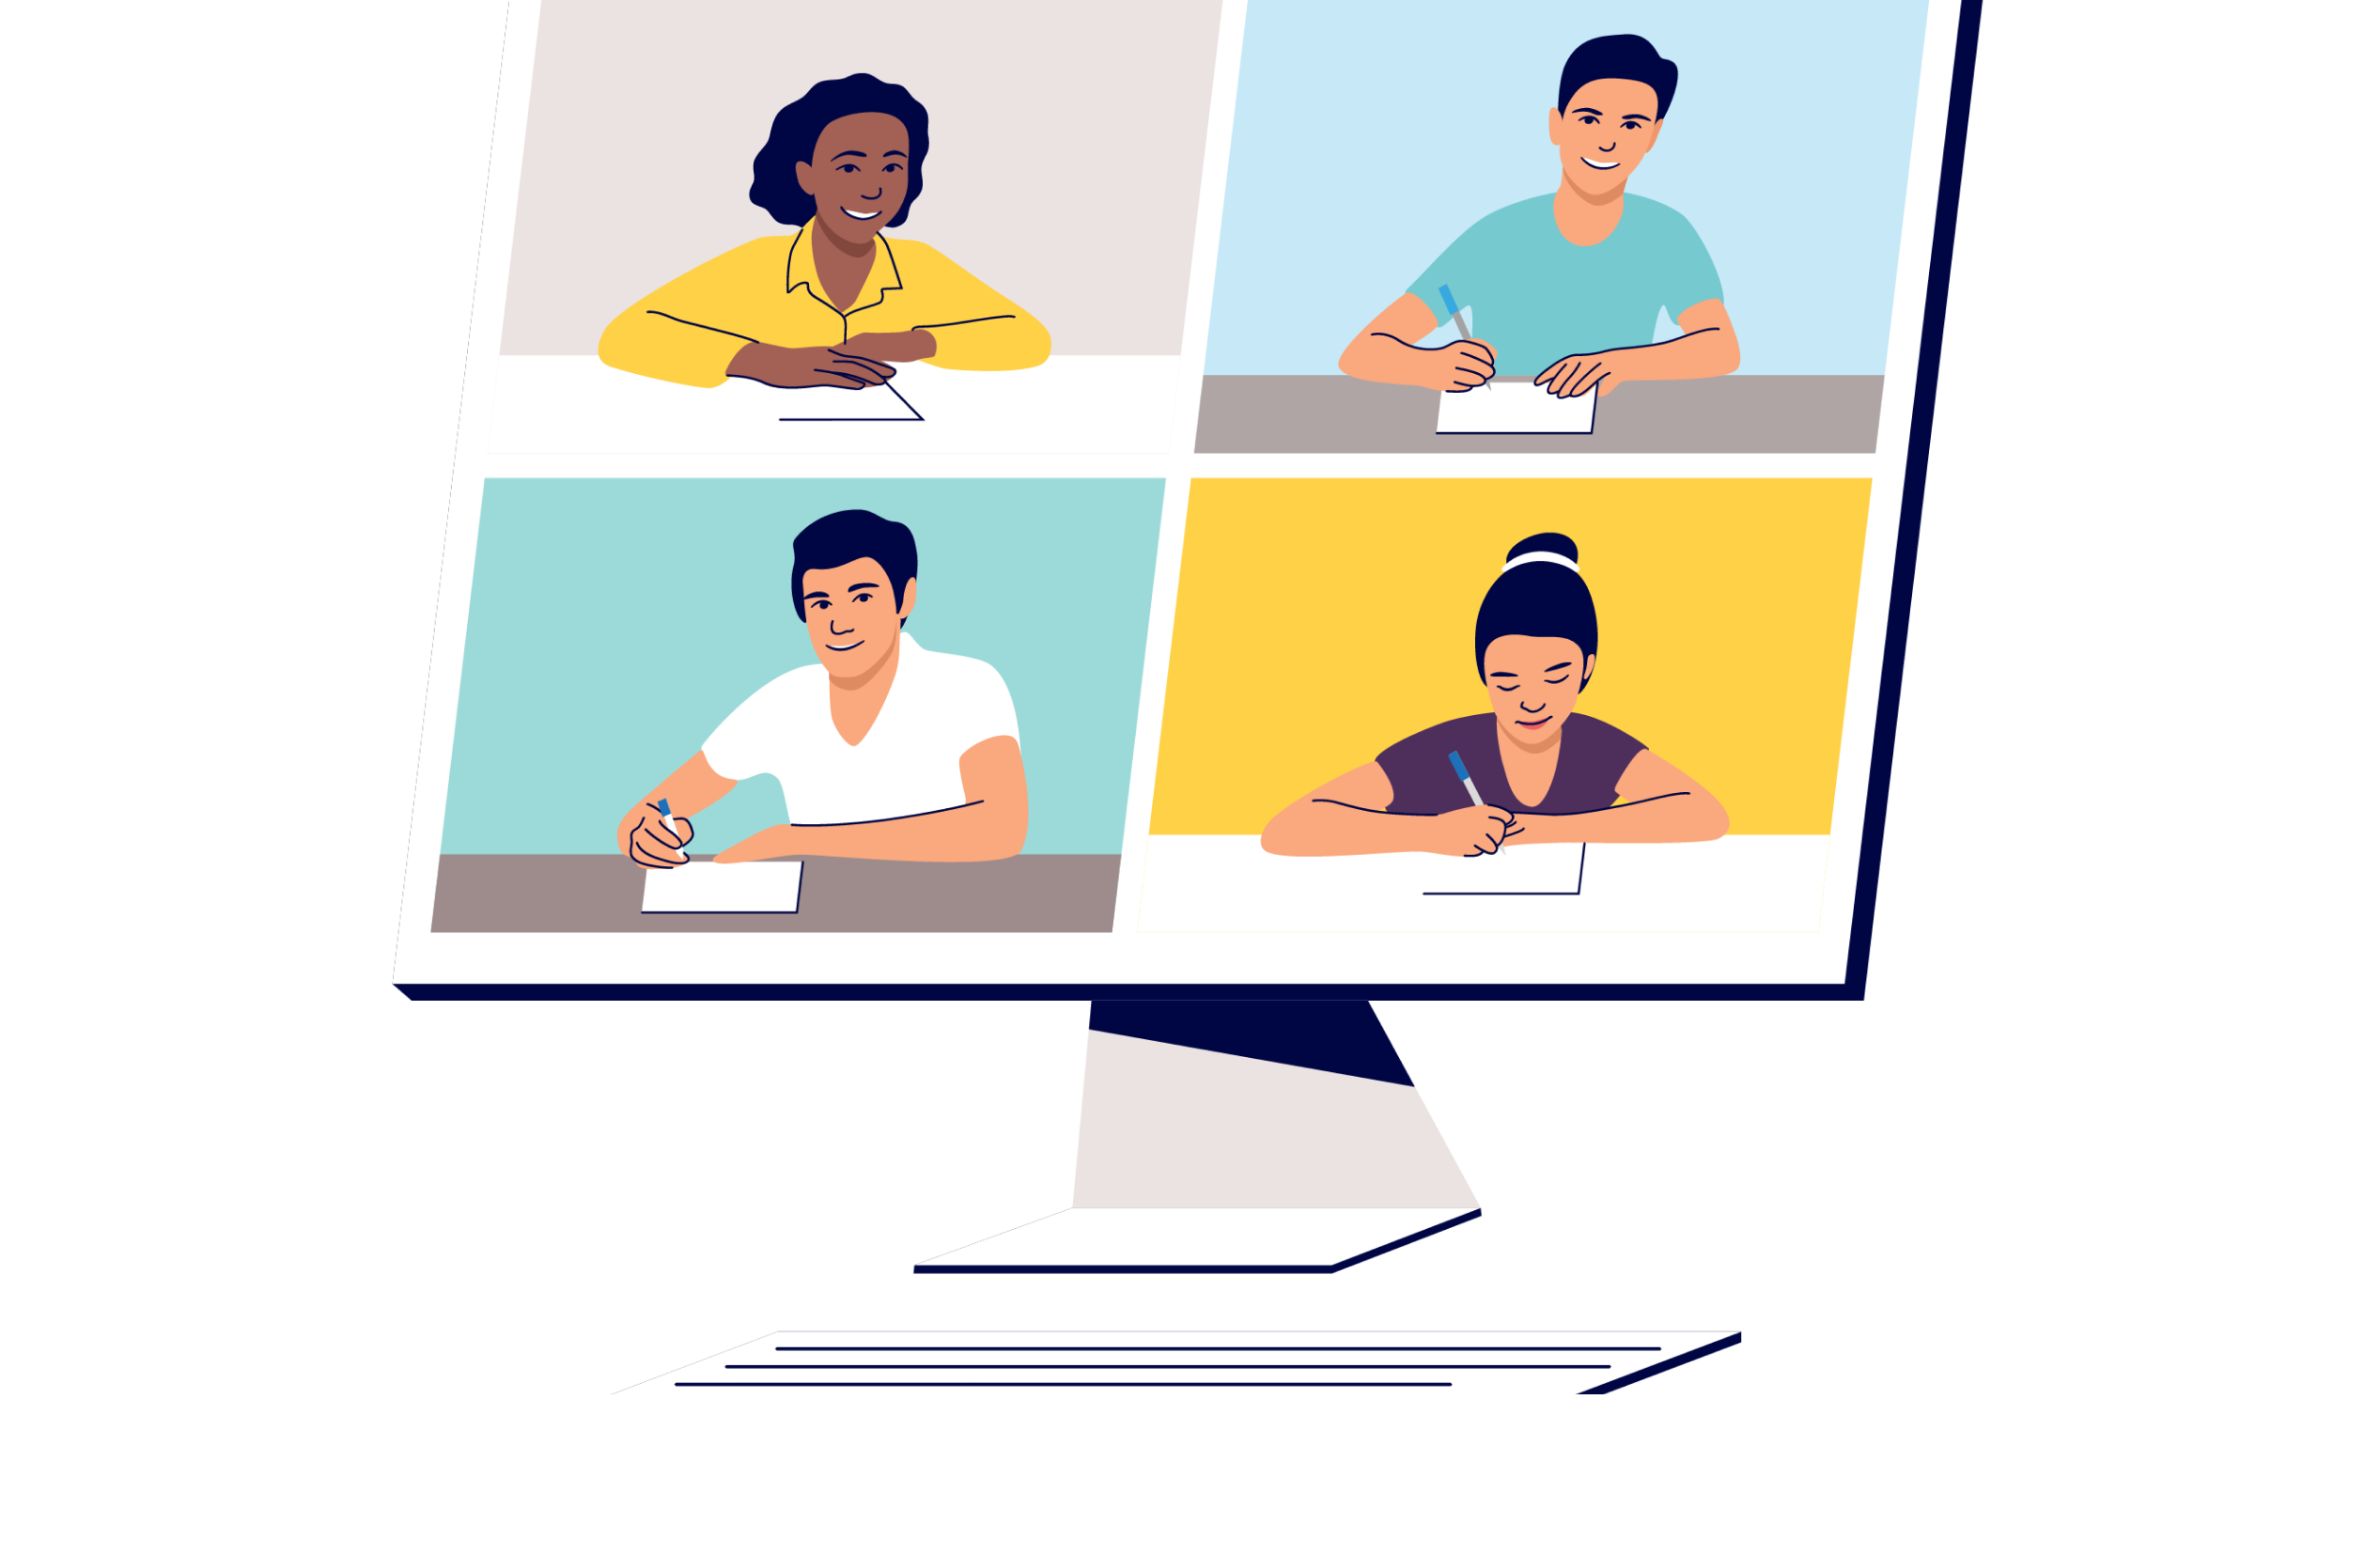 How to Build Trust with Remote Teams